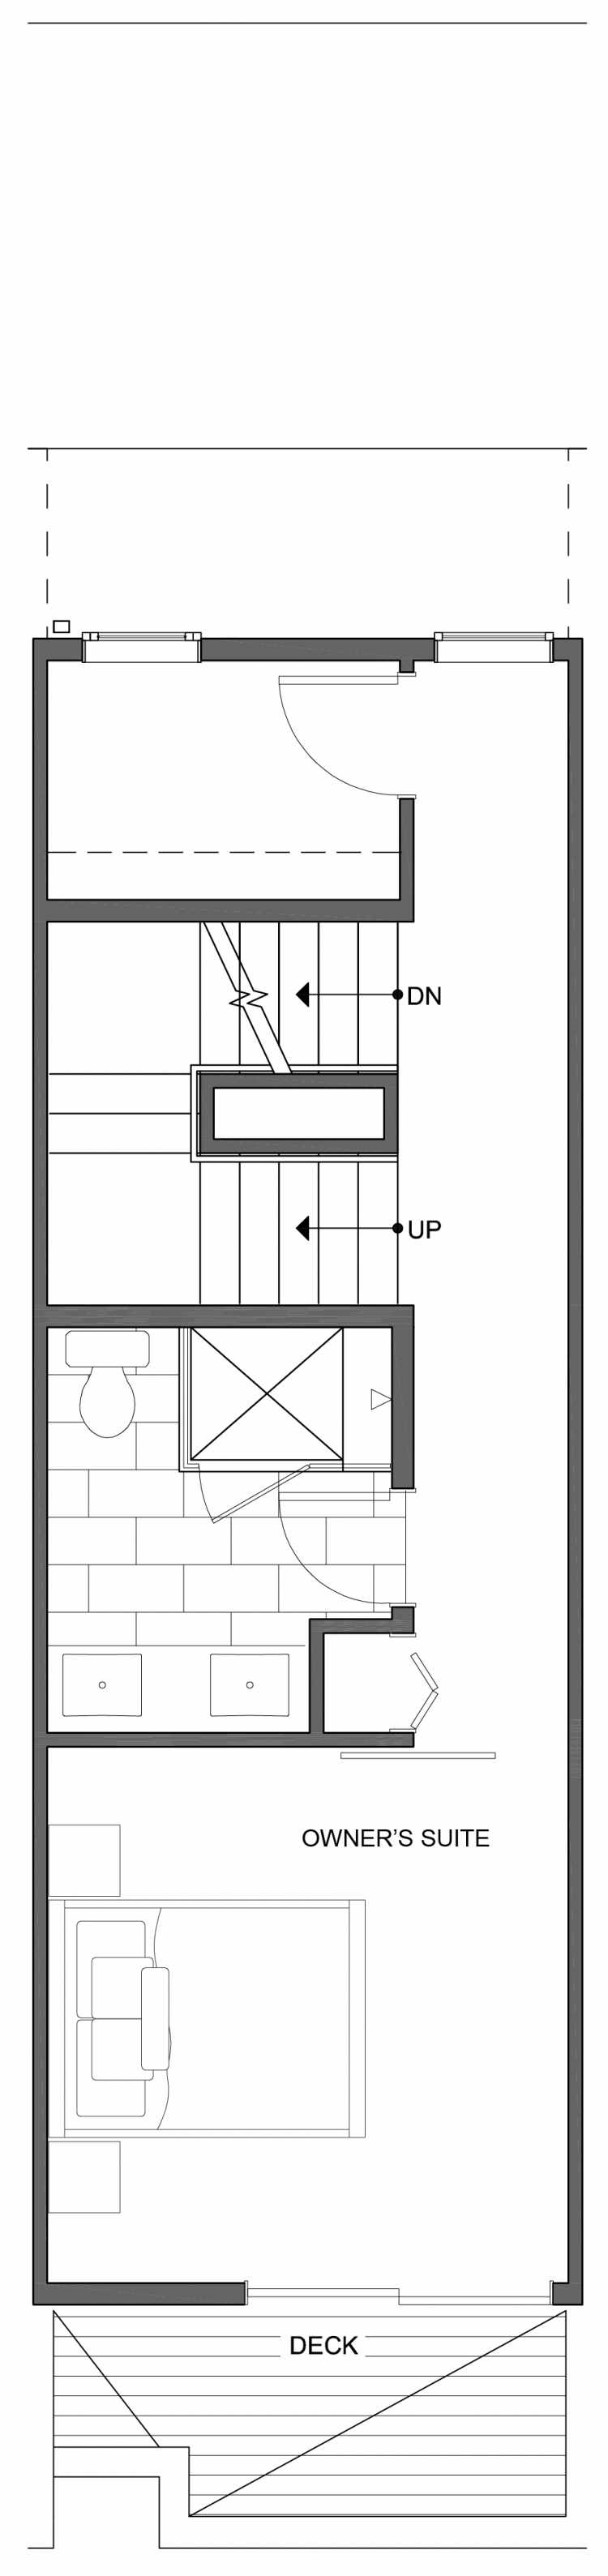 Fourth Floor Plan of 806C N 46th St, One of the Nino 15 East Townhomes by Isola Homes